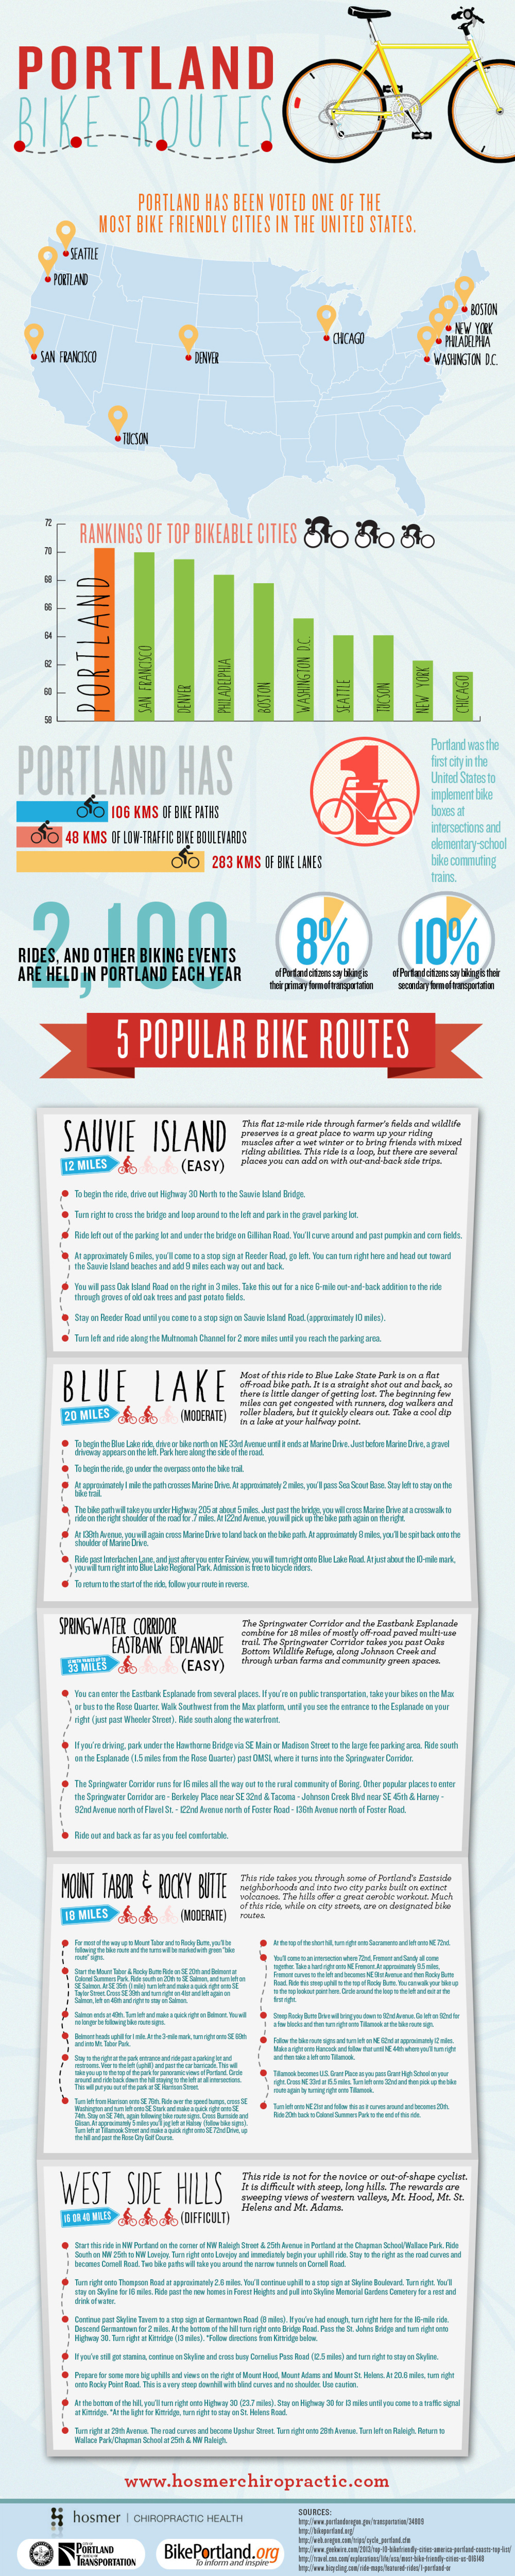 Portland Bike Routes  Infographic